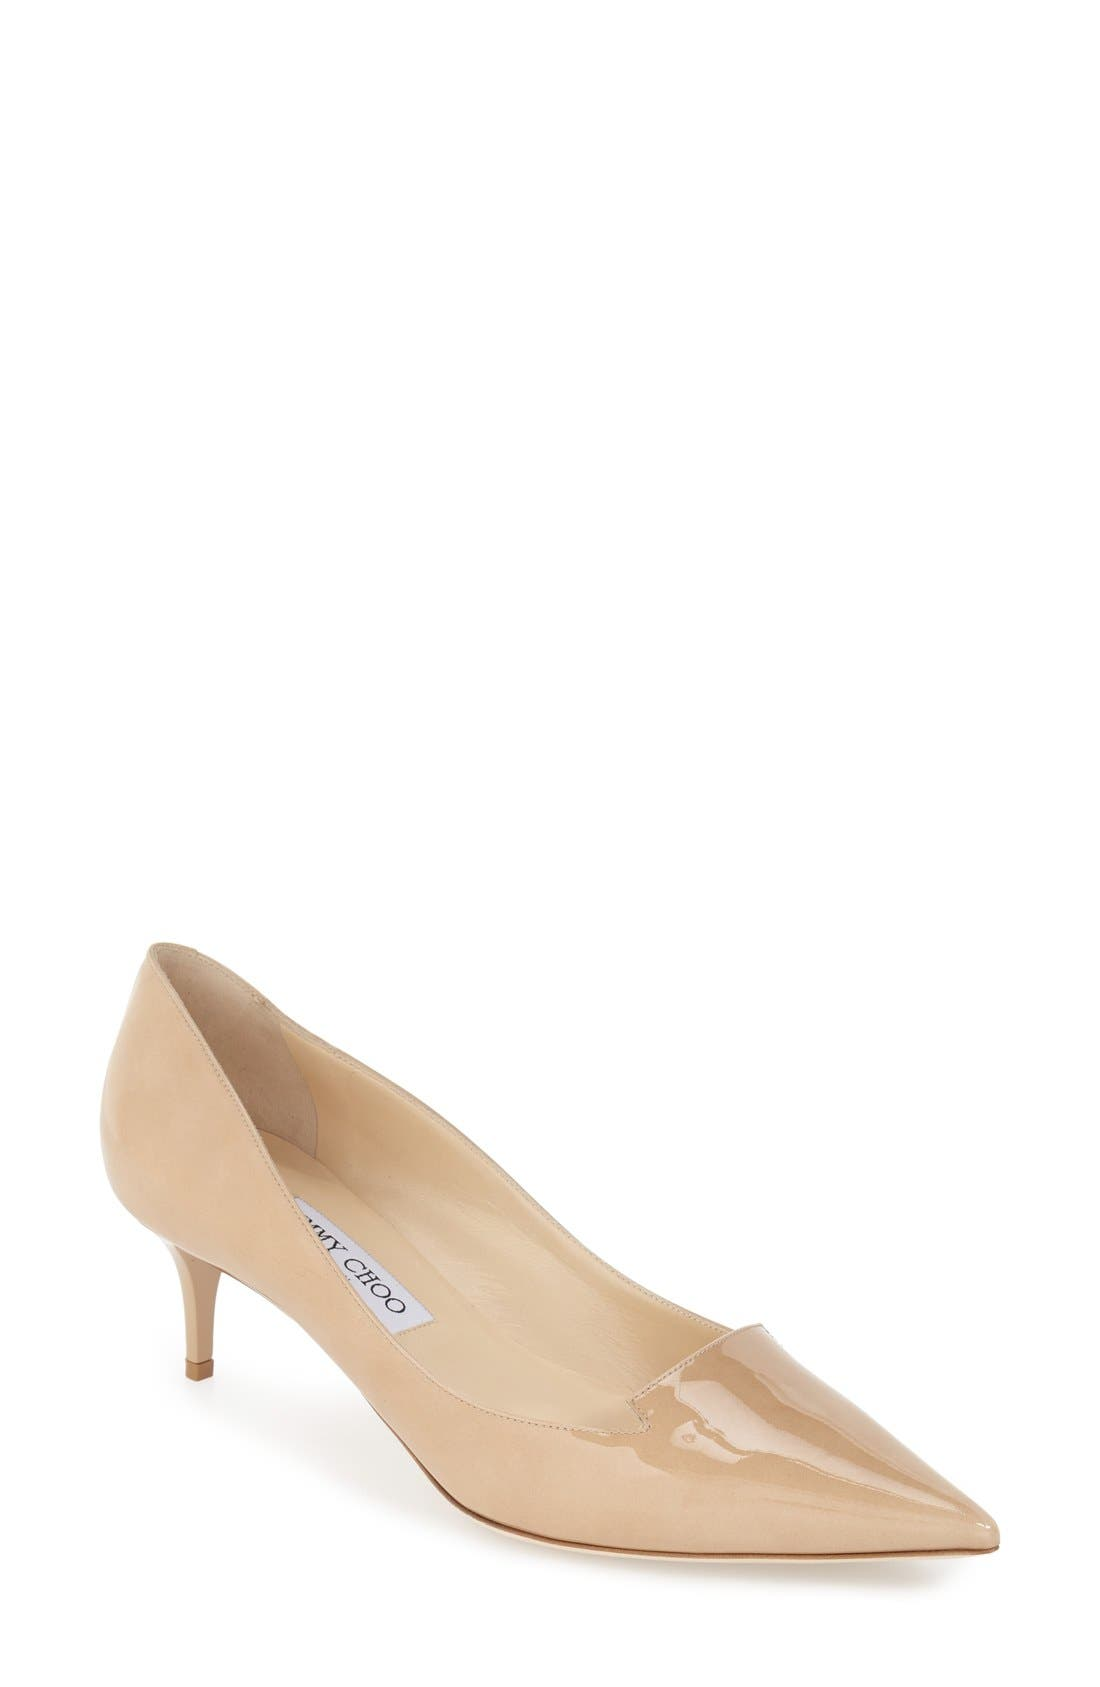 Main Image - Jimmy Choo 'Allure' Pointy Toe Pump (Women)